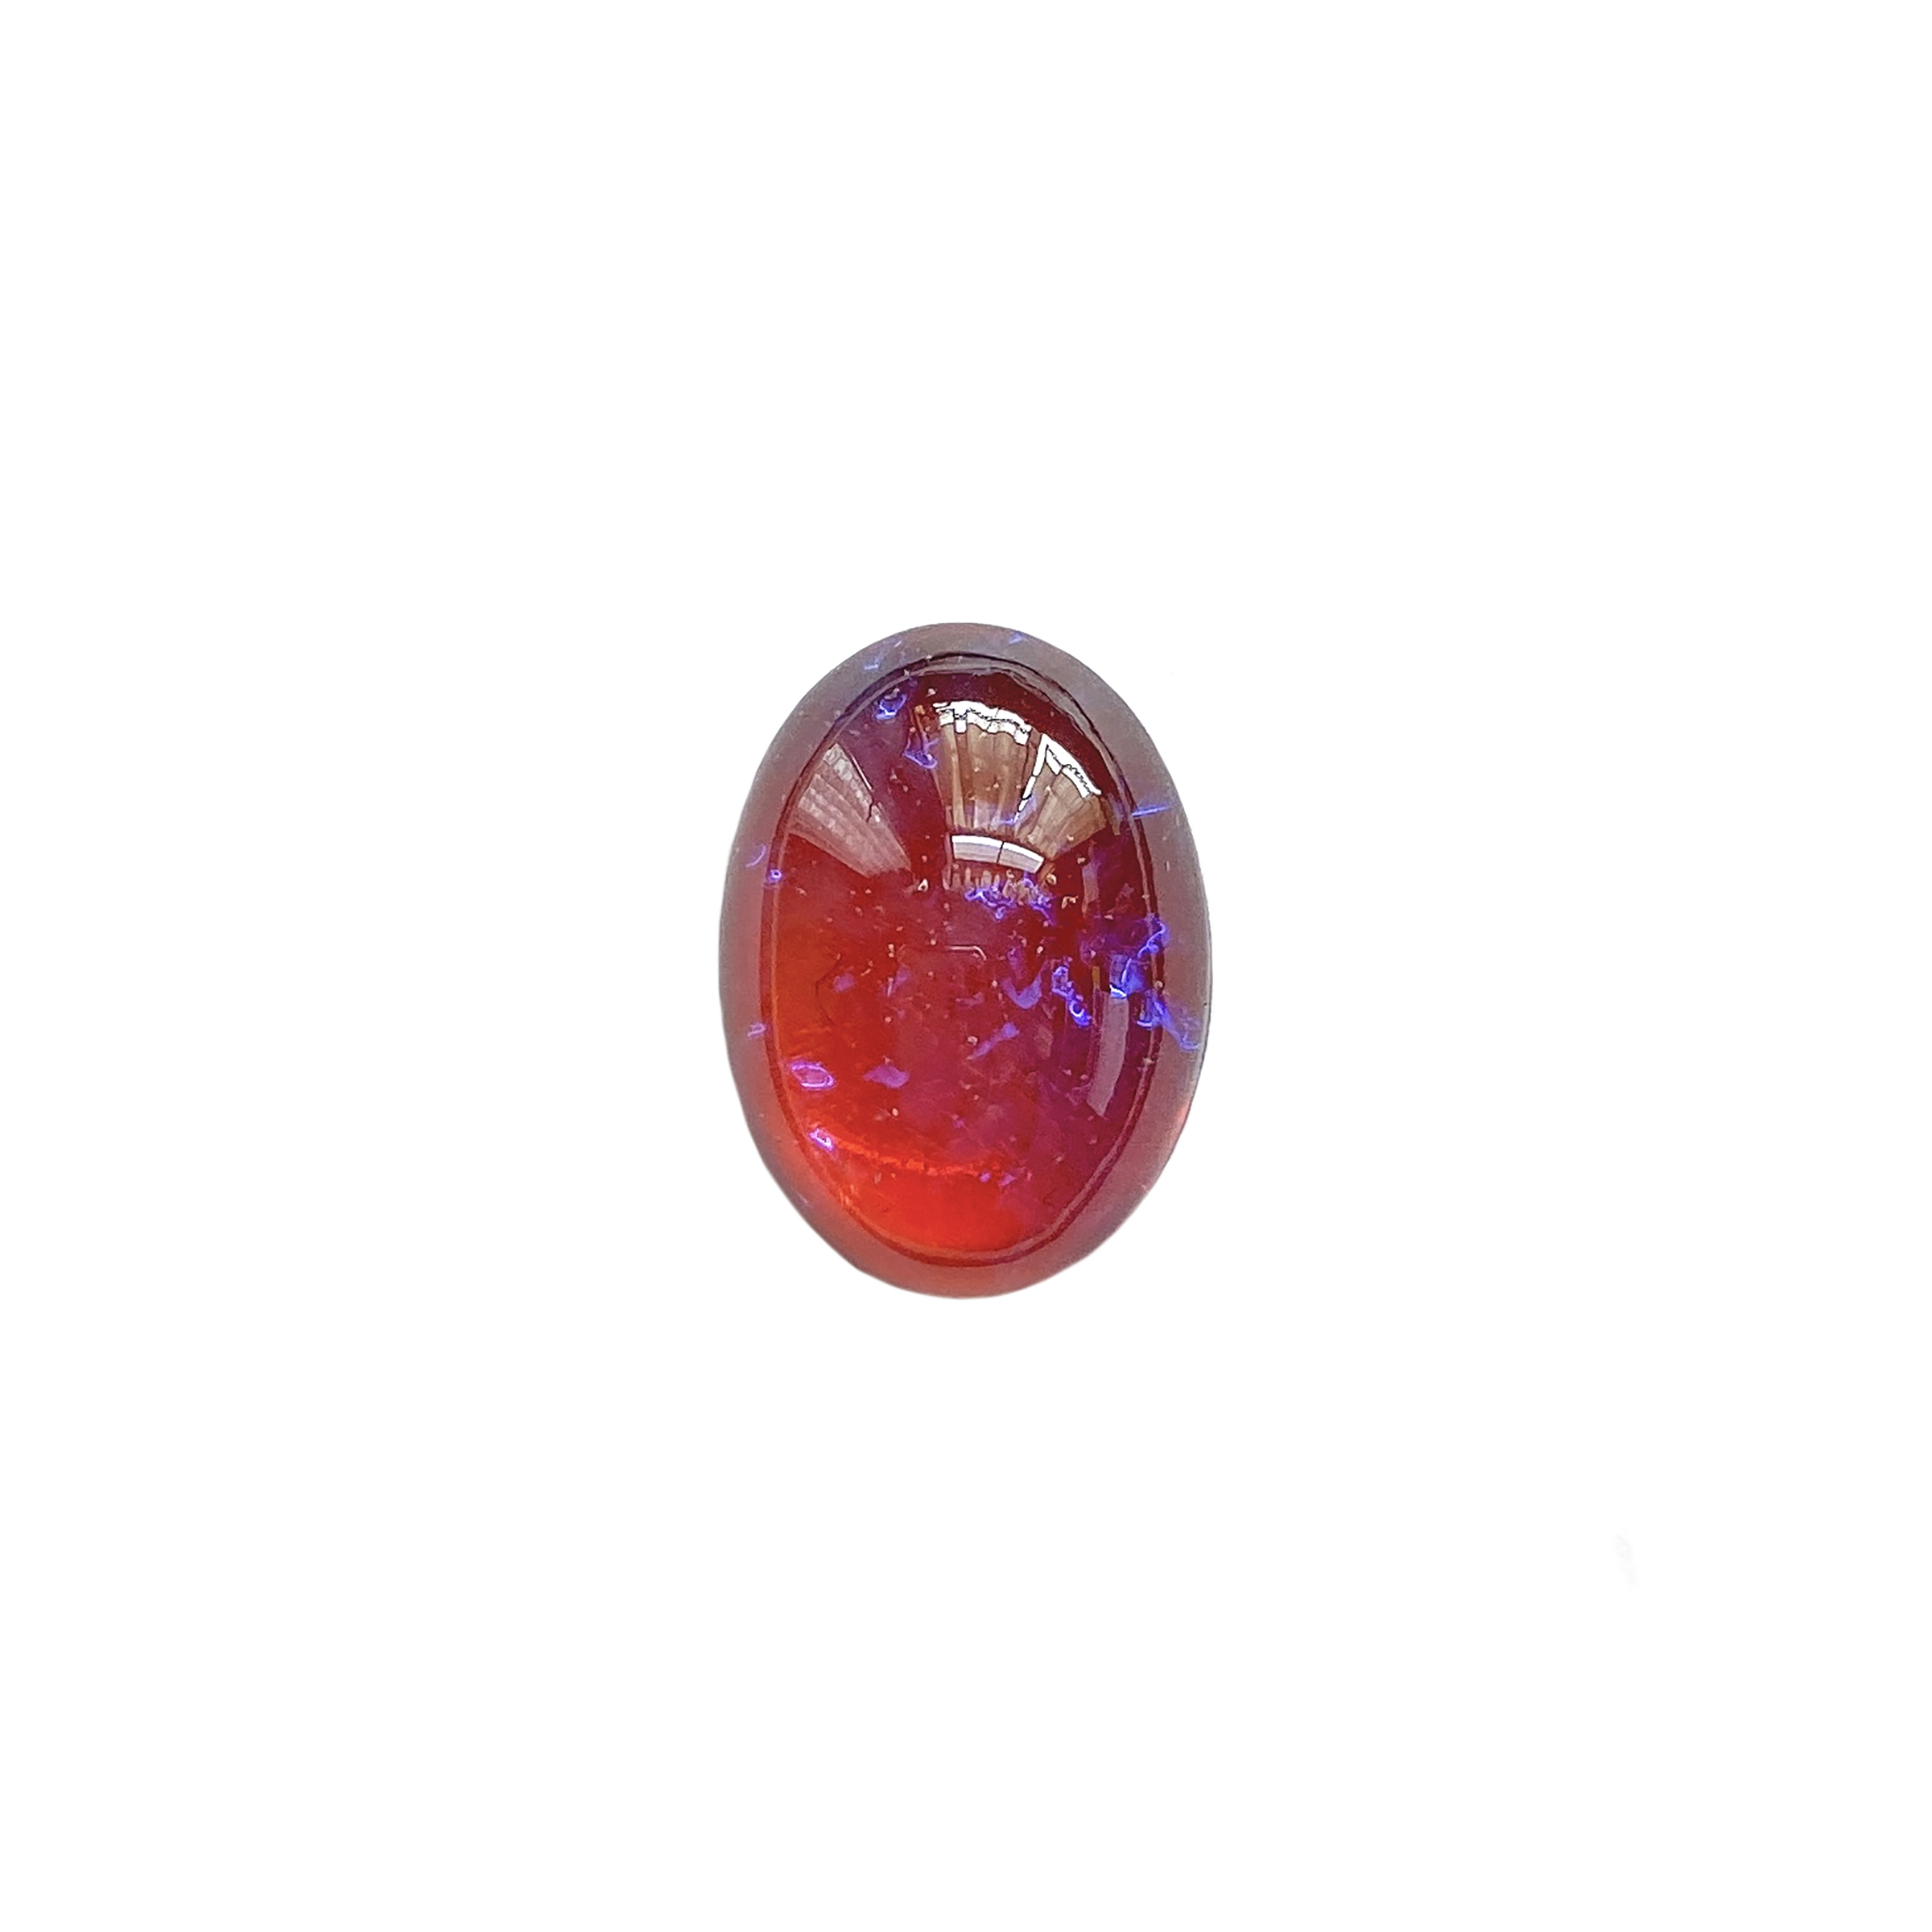 mexican opal, Czech, Preciosa, opal, lampwork stone, stone, mexican opal stone, coral purple, oval stone, 18x13mm, simulated imitation, hand-worked glass, glass, glass stone, coral-purple, cabochon, B'sue Boutiques, jewelry stone, jewelry making, 01407